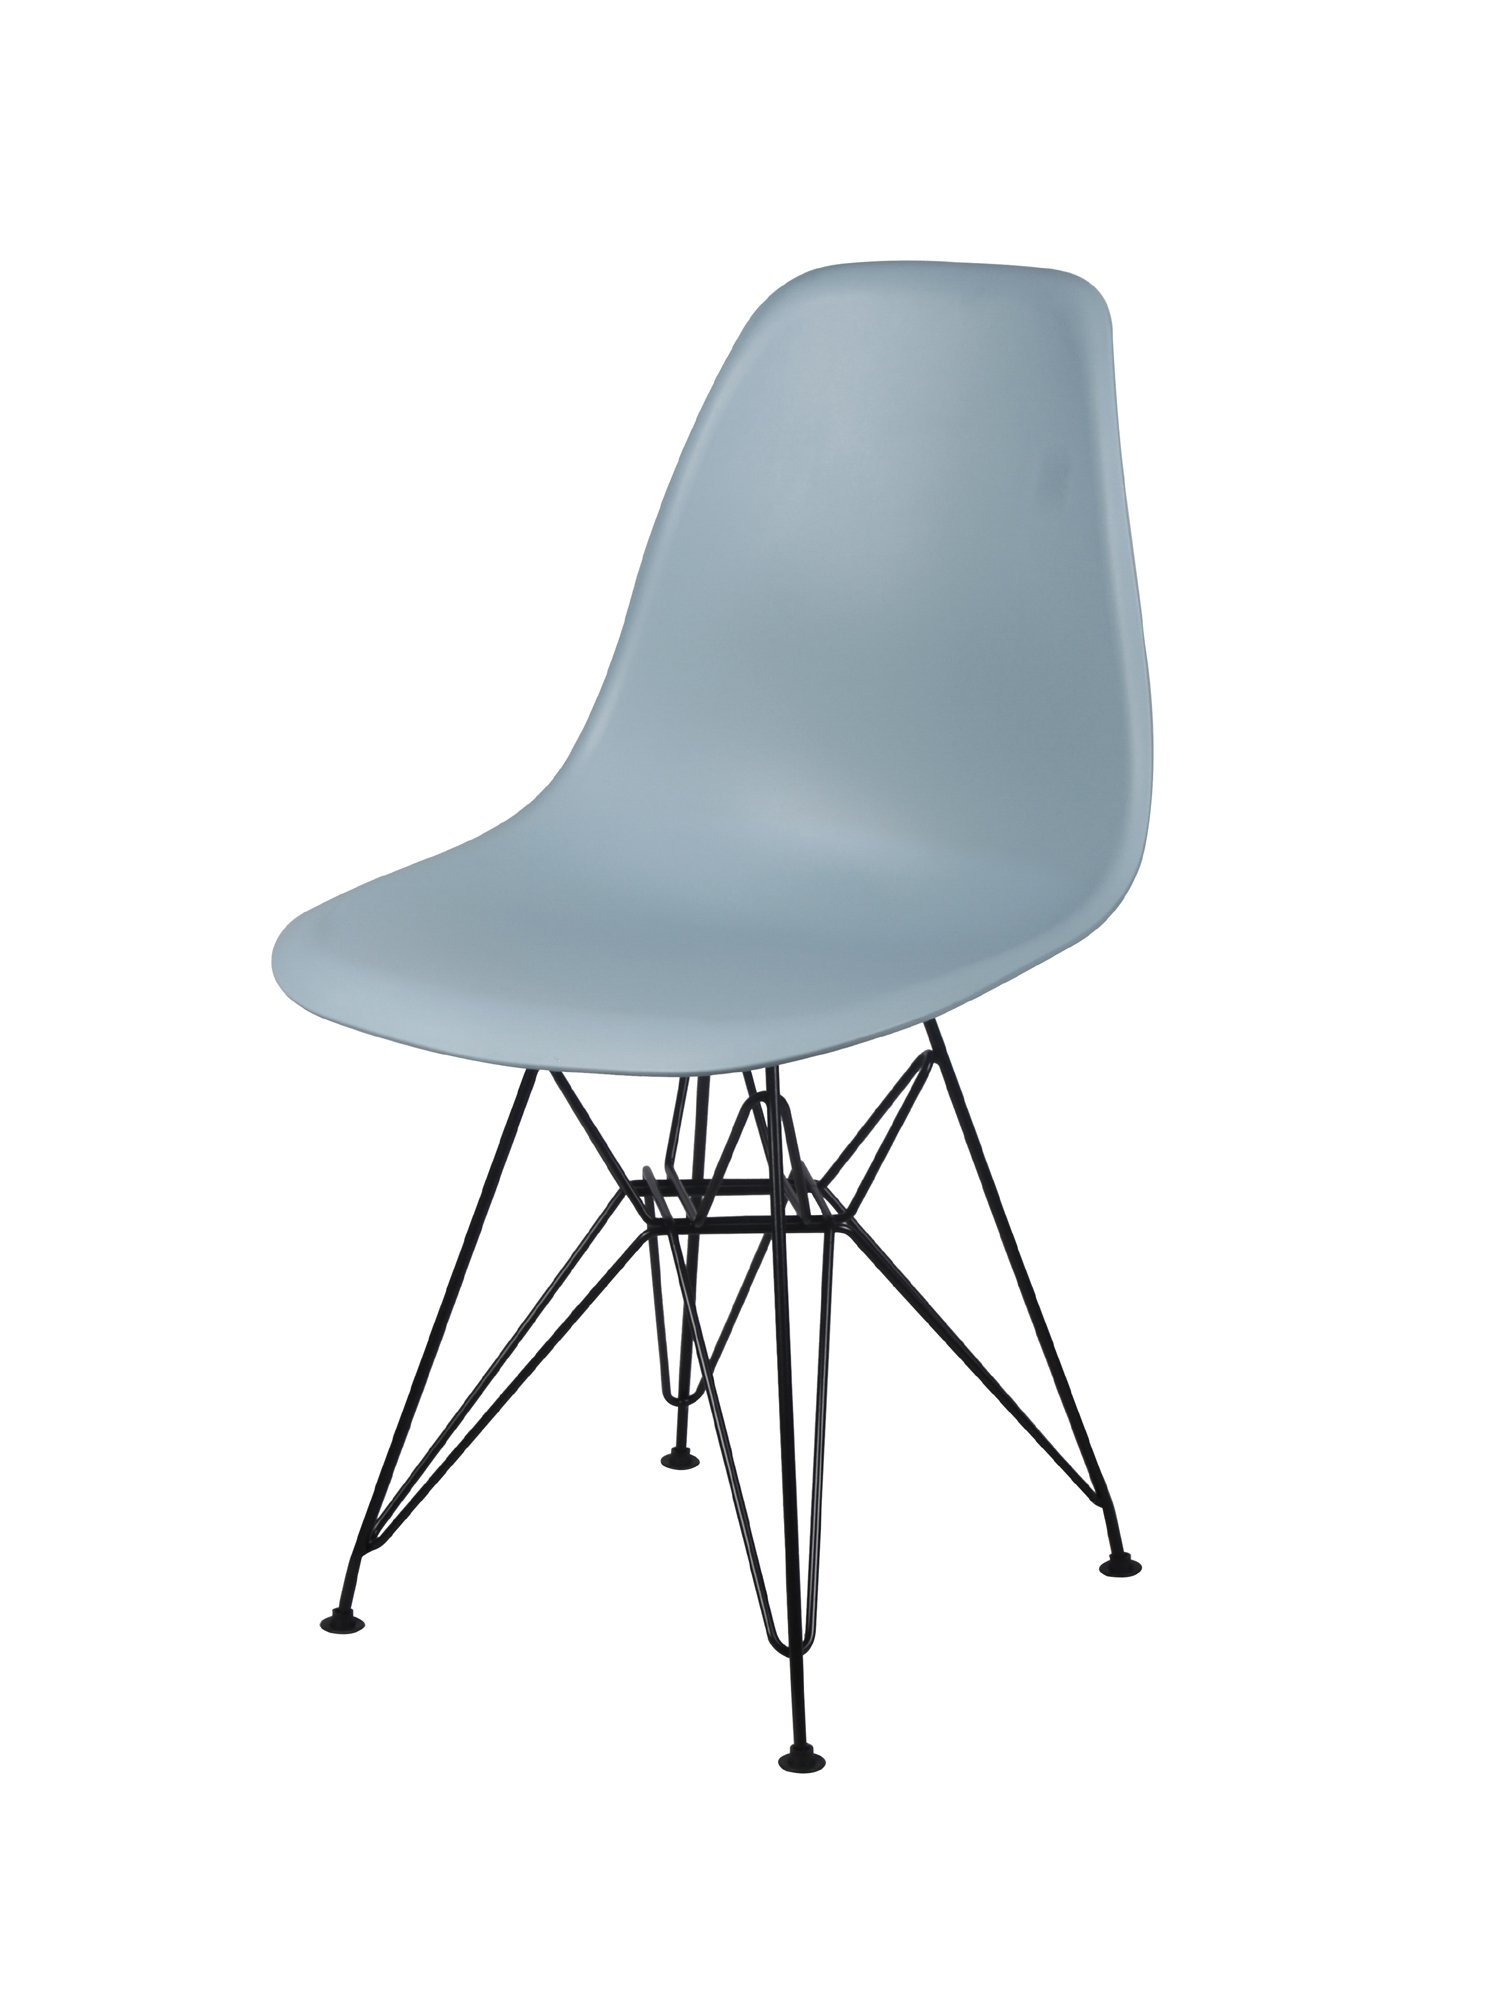 GIA Mid-Century Plastic Chair, 1-Pack, Fog/Black Metal Legs - STURDY CONSTRUCTION: Well-made and built to last. Black Eiffel supports ensure stability. Makes a beautiful and elegant addition to any room. CONTEMPORARY: Adds a designer touch to your home or office. Your friends and family will be envious of your great taste in furniture. MEASUREMENTS: Chairs are 32 inches high, 18 inches deep and 18 inches wide. - kitchen-dining-room-furniture, kitchen-dining-room, kitchen-dining-room-chairs - 61WJAN9tNmL -